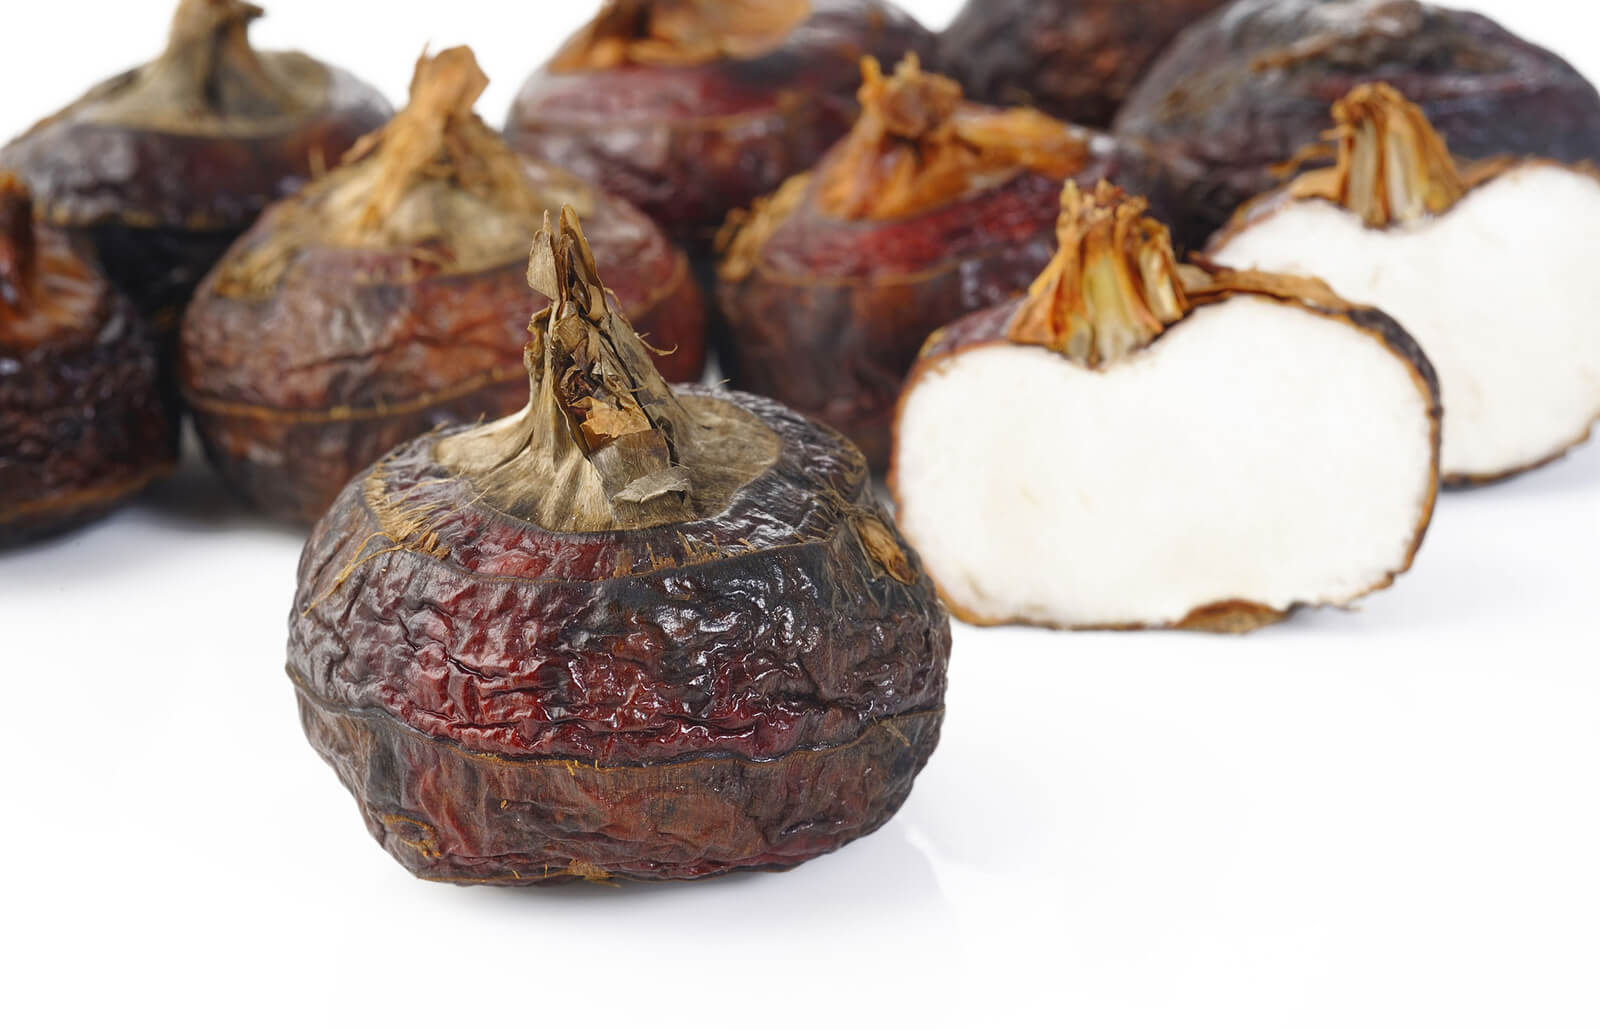 Water Chestnut Growth, Care, and Use | LoveToKnow